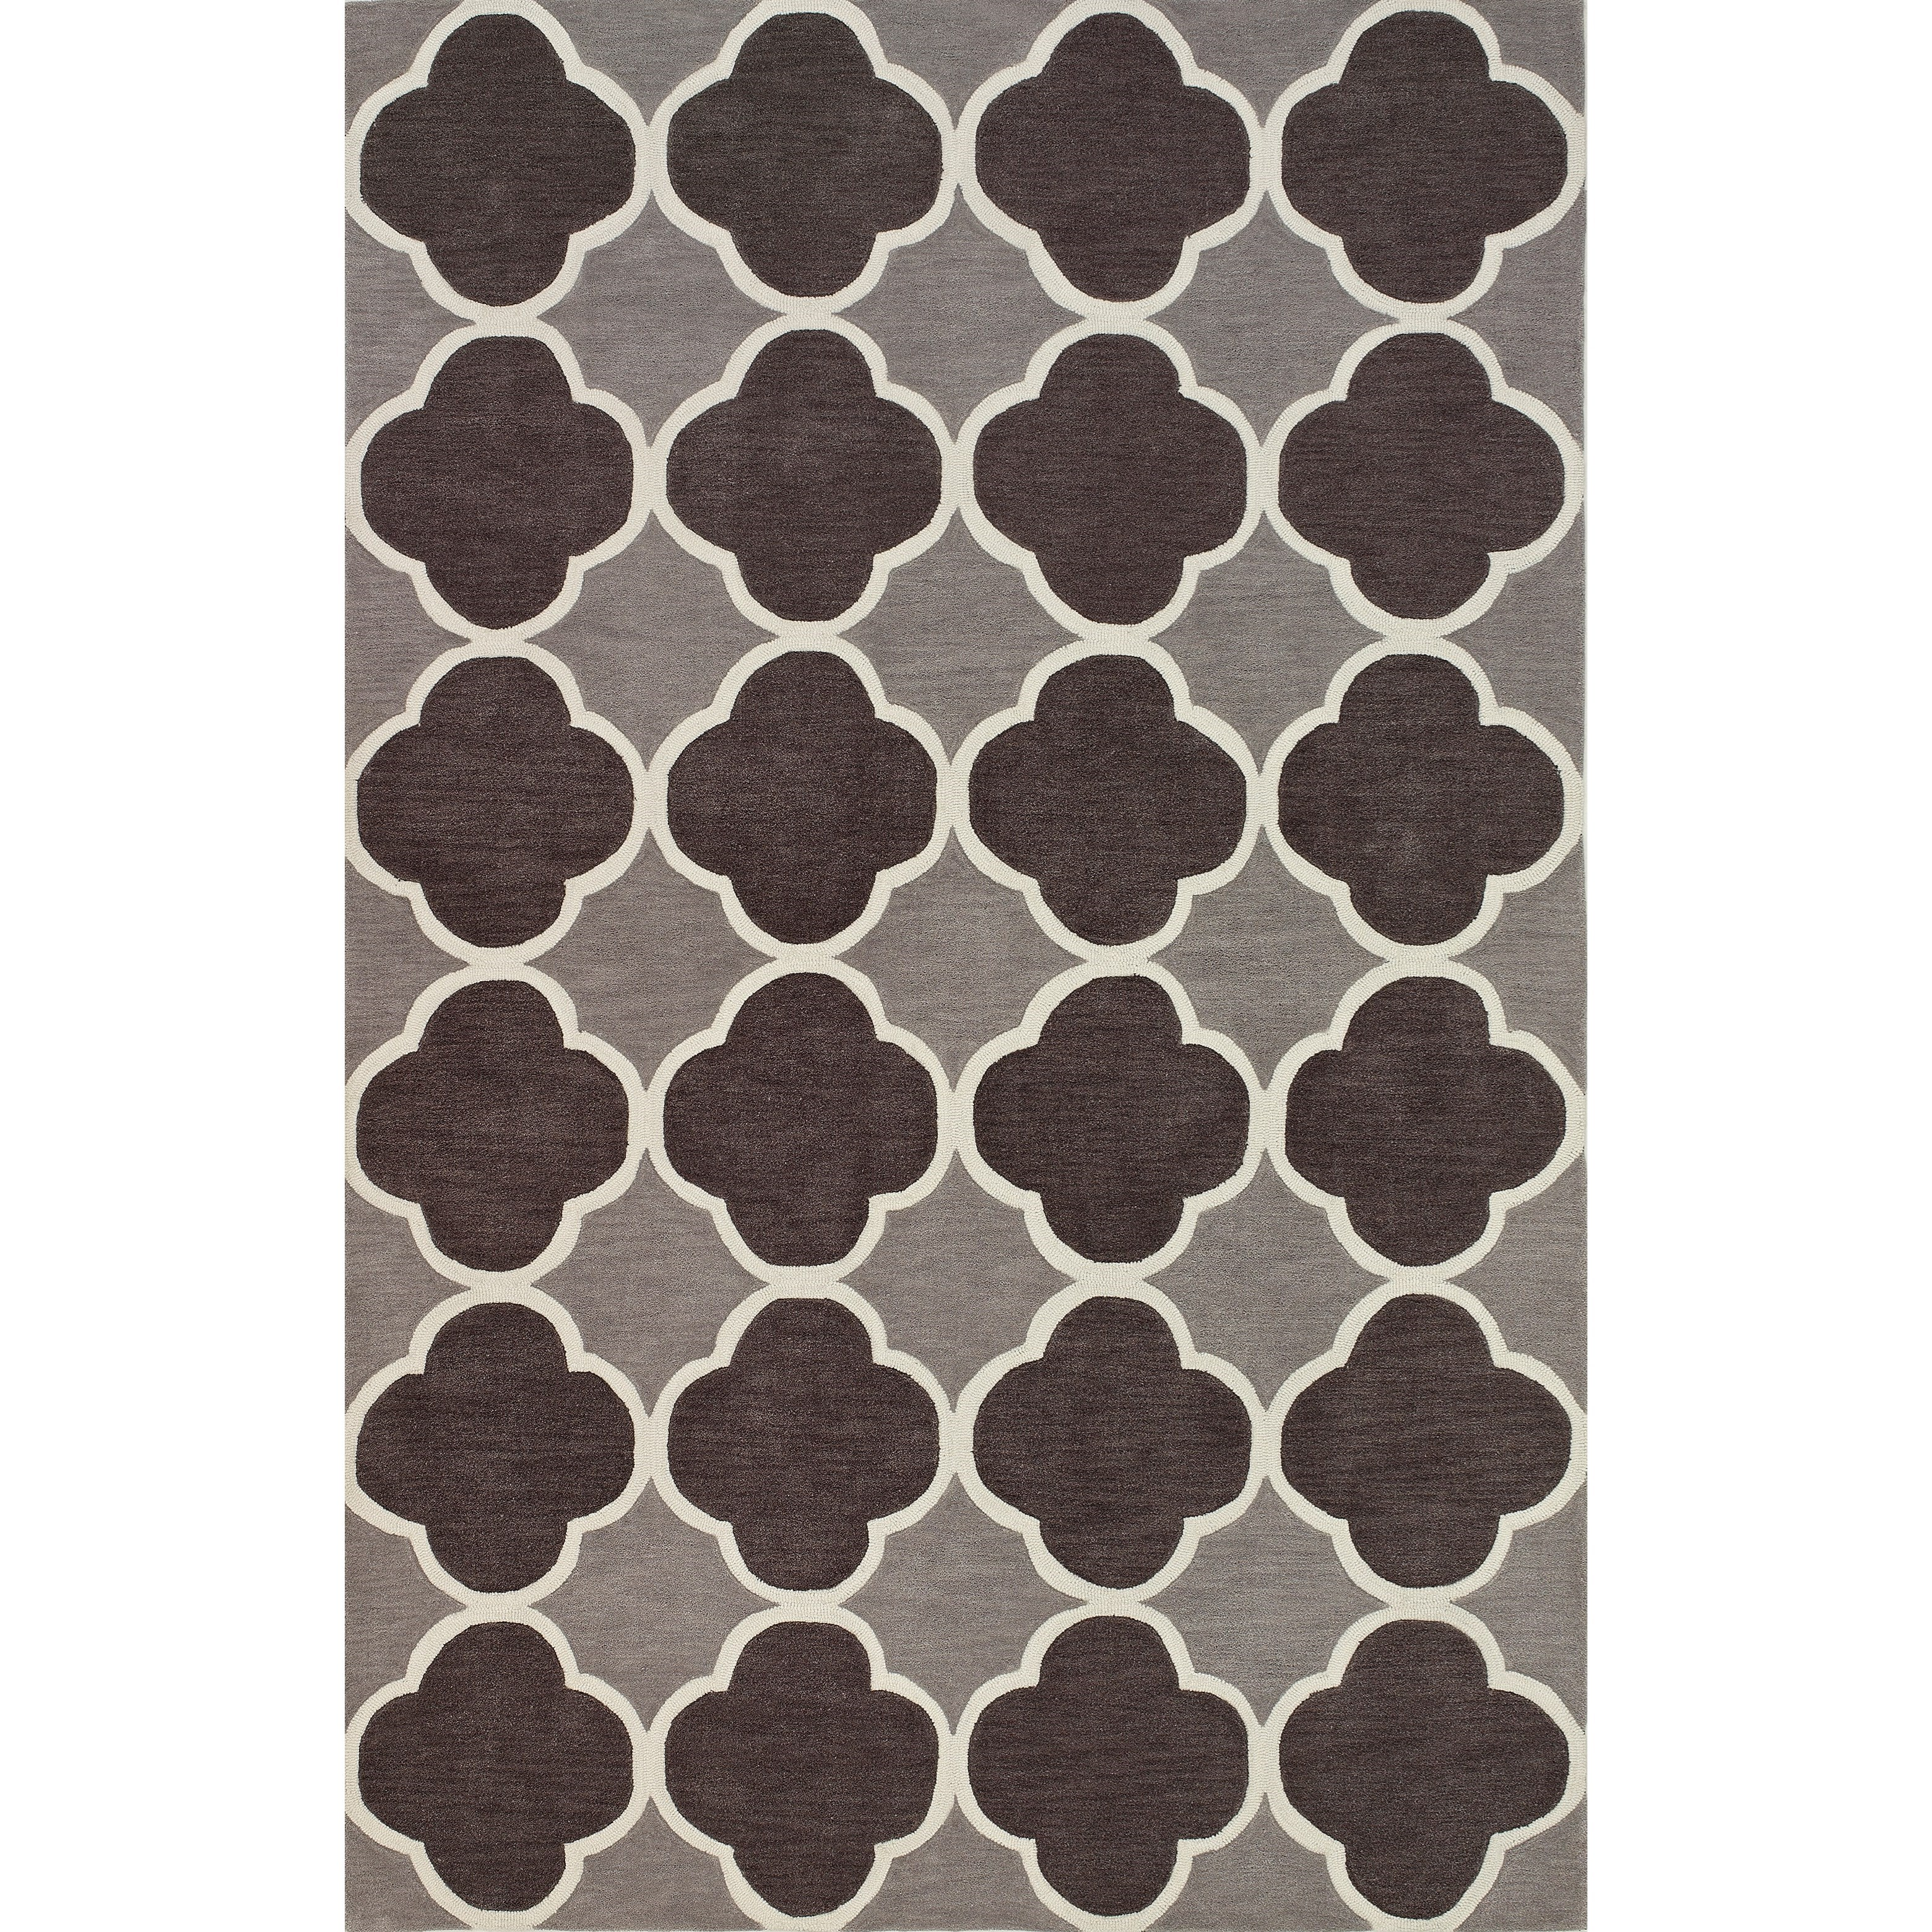 """Infinity Charcoal 3'6""""X5'6"""" Rug by Dalyn at Fashion Furniture"""